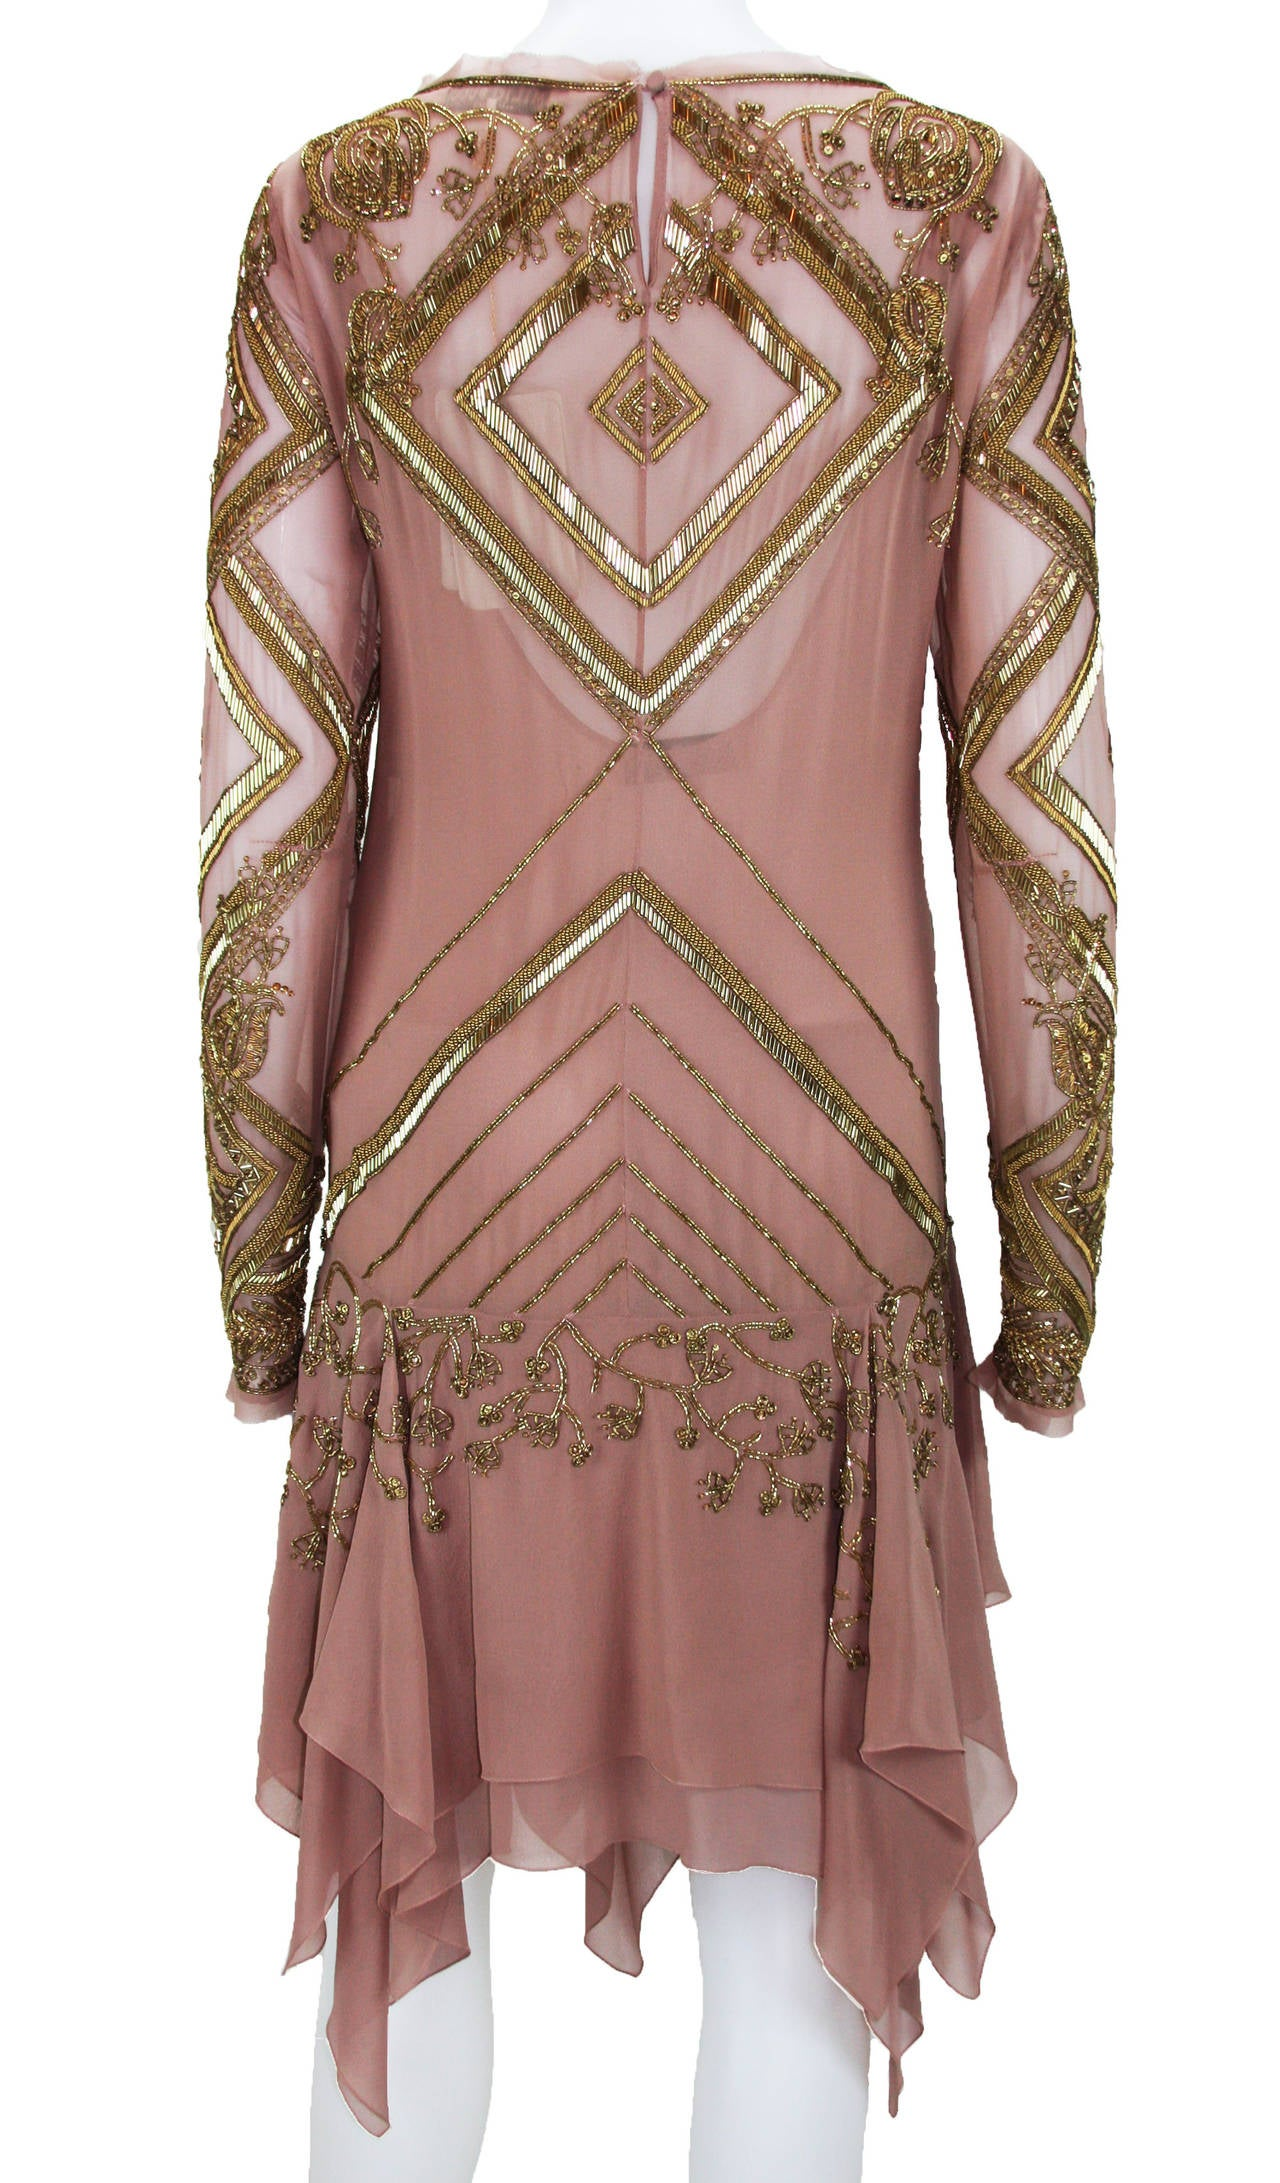 New EMILIO PUCCI Embellished Silk Dress 6